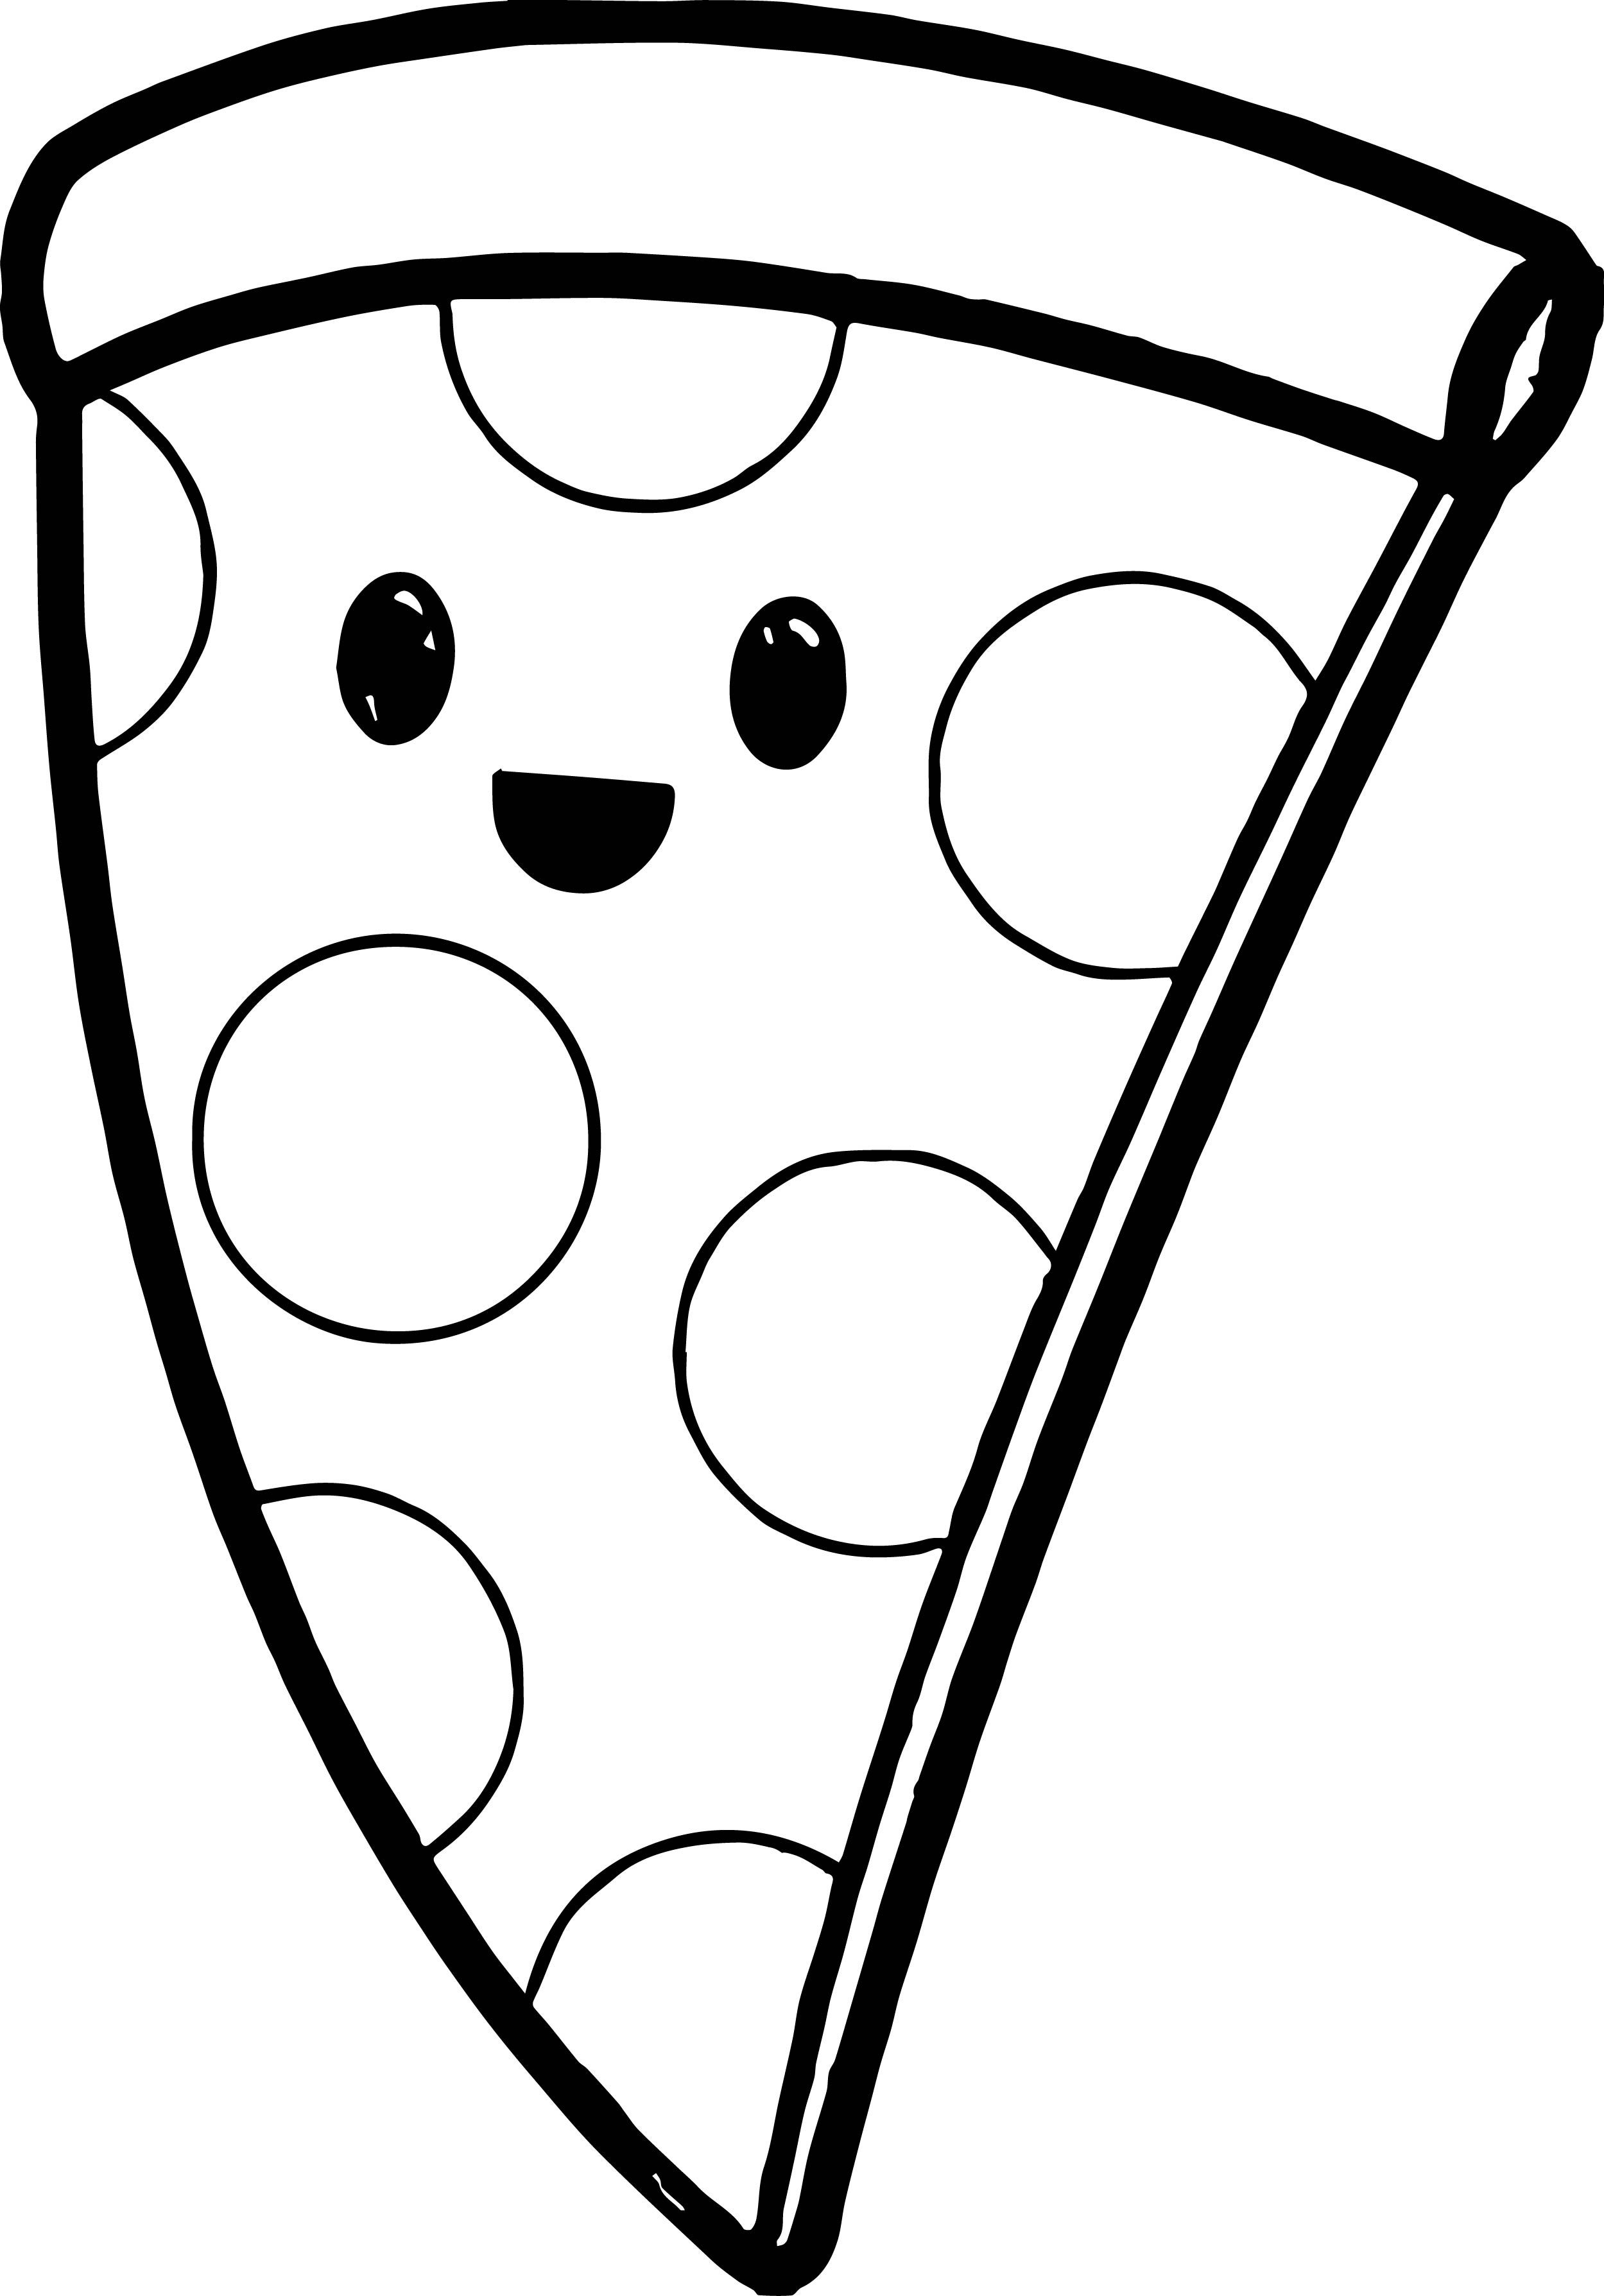 Coloring Pages Kids Pizza Very Cute Best Of Page Jpg 2499 3577 Easy Coloring Pages Shopkins Colouring Pages Cute Coloring Pages